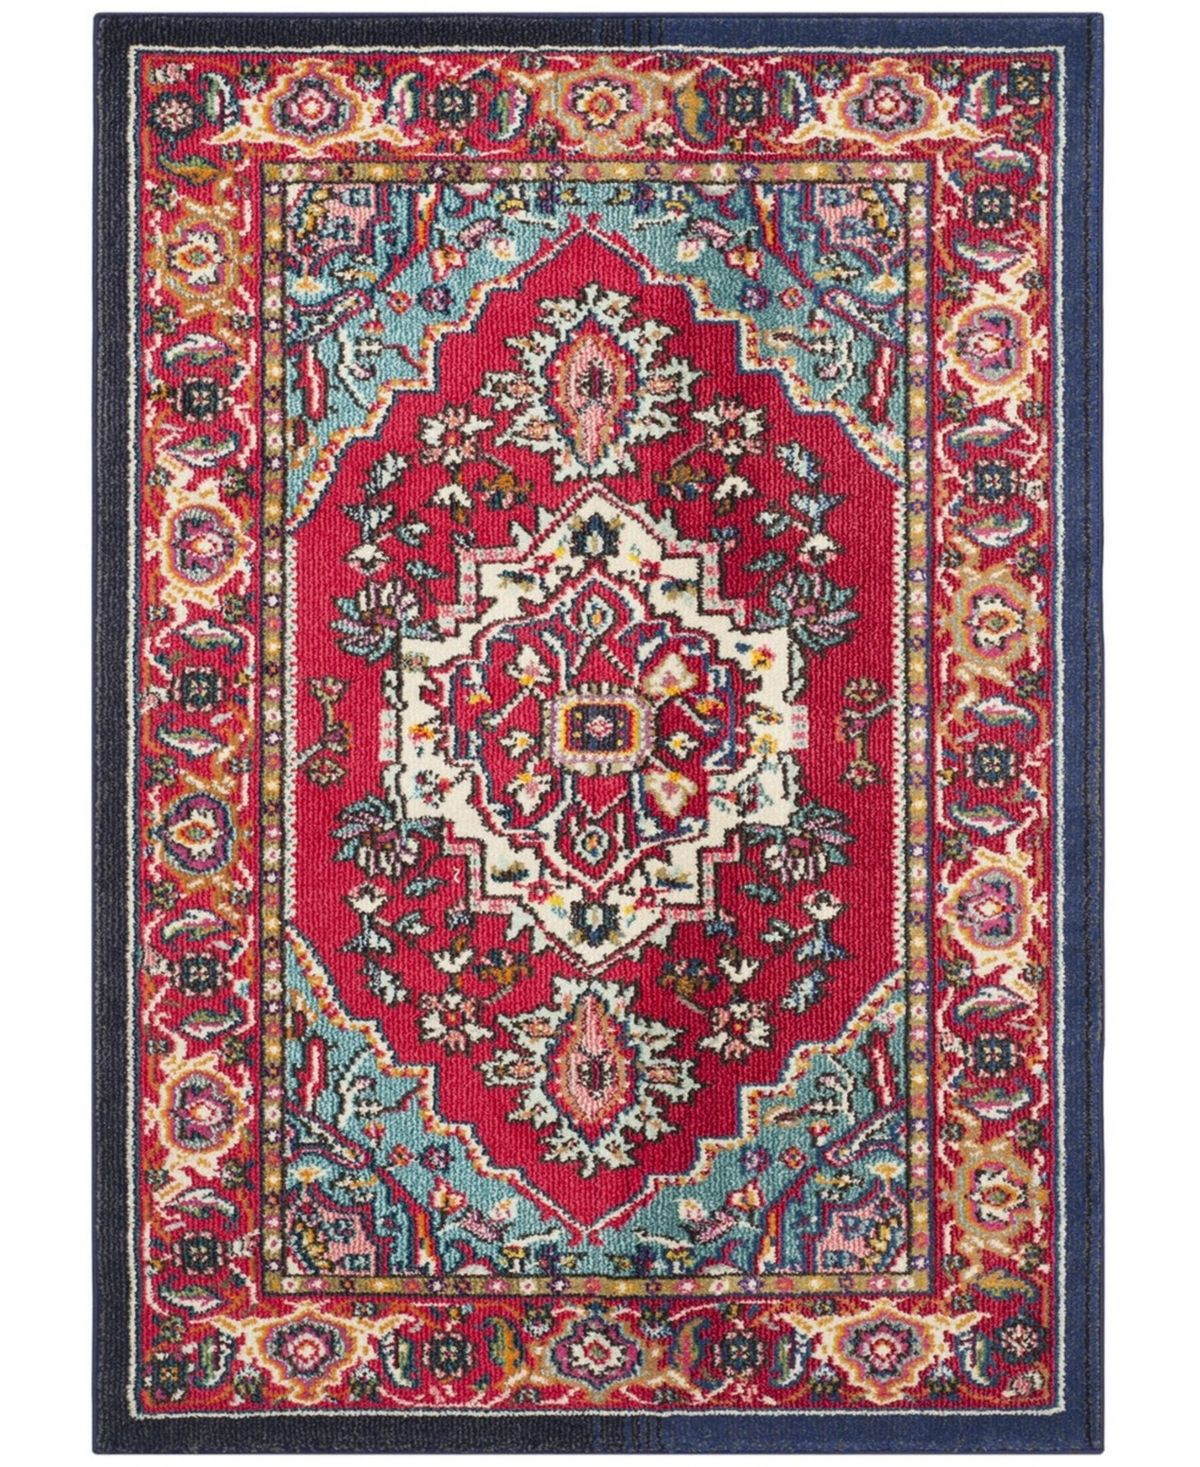 Safavieh Monaco Red And Turquoise 10 X 14 Area Rug Reviews Rugs Macy S Rugs On Carpet Classic Rugs Rugs